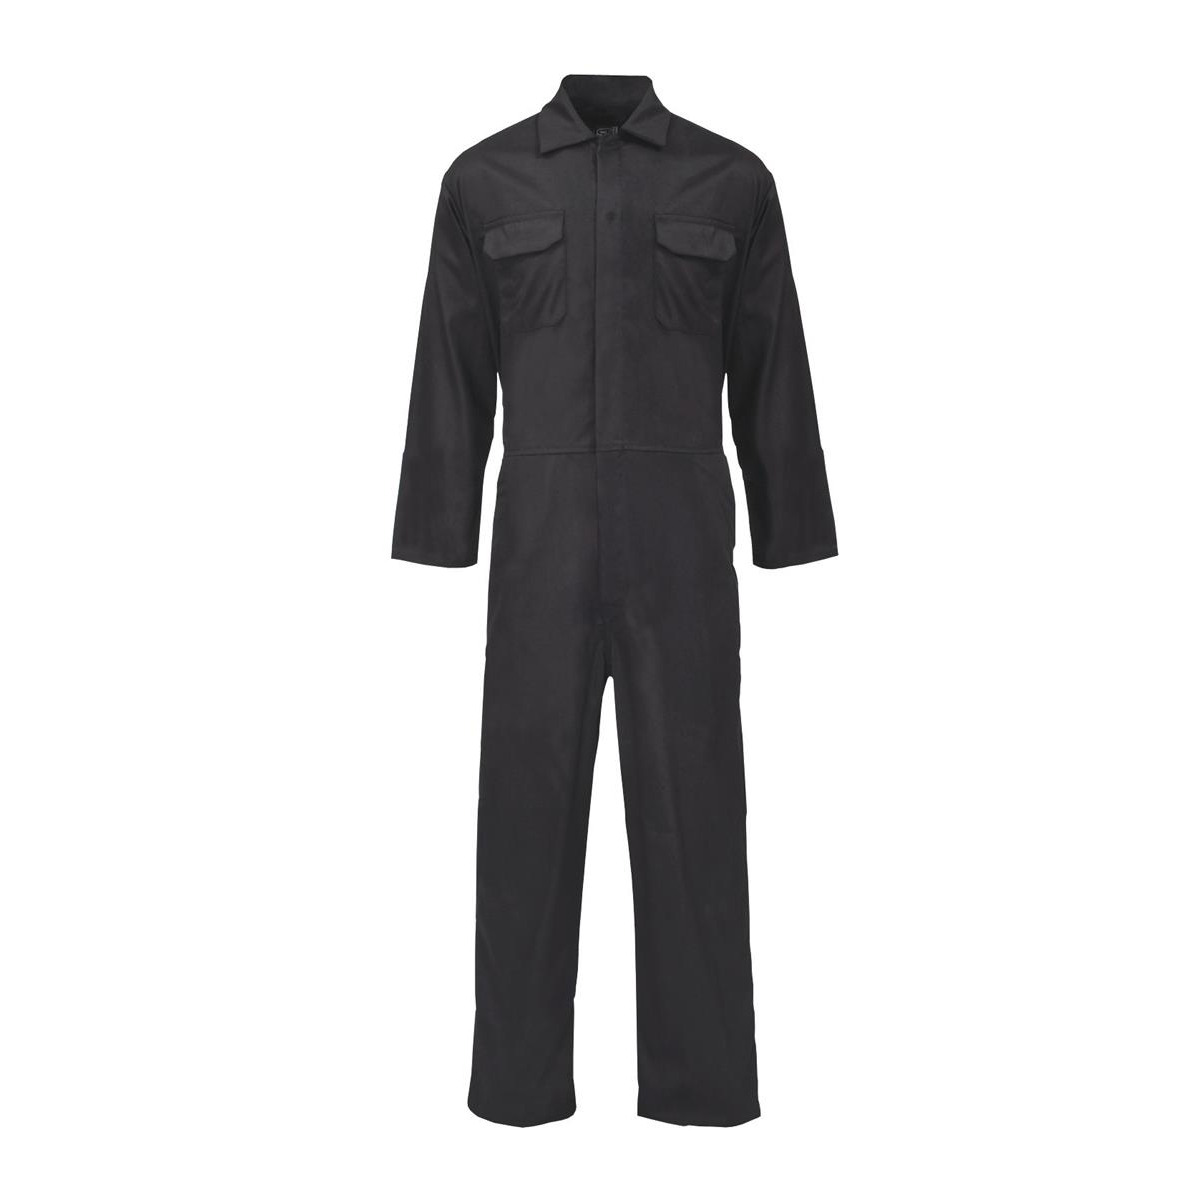 Coveralls / Overalls Coverall Basic with Popper Front Opening Polycotton Small Black Ref RPCBSBL36 *Approx 3 Day Leadtime*